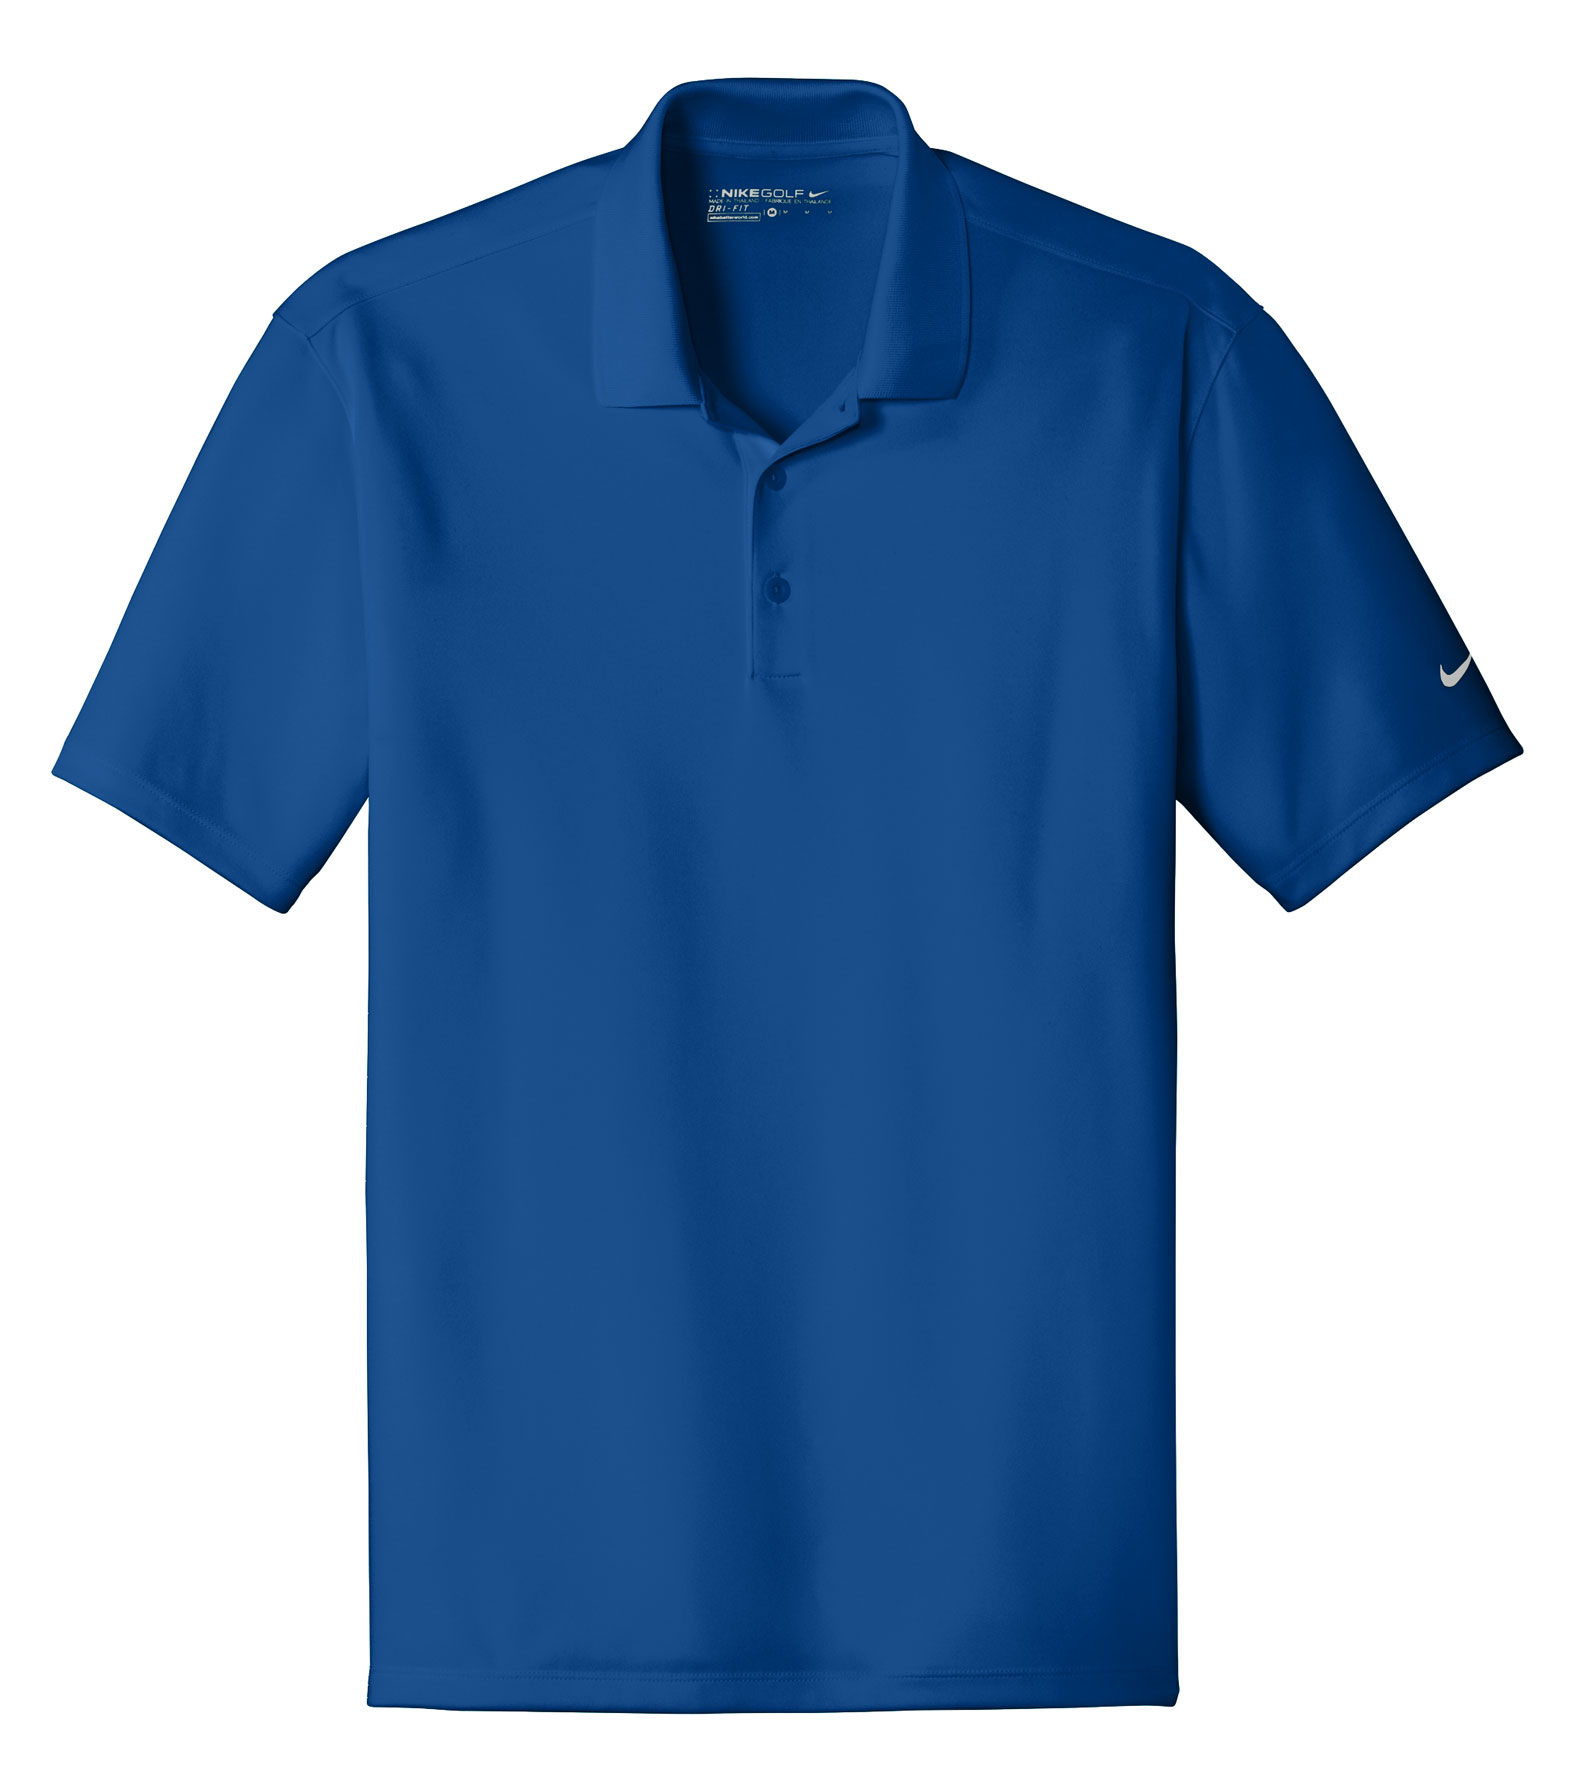 Nike Golf Mens Dri-FIT Players Polo